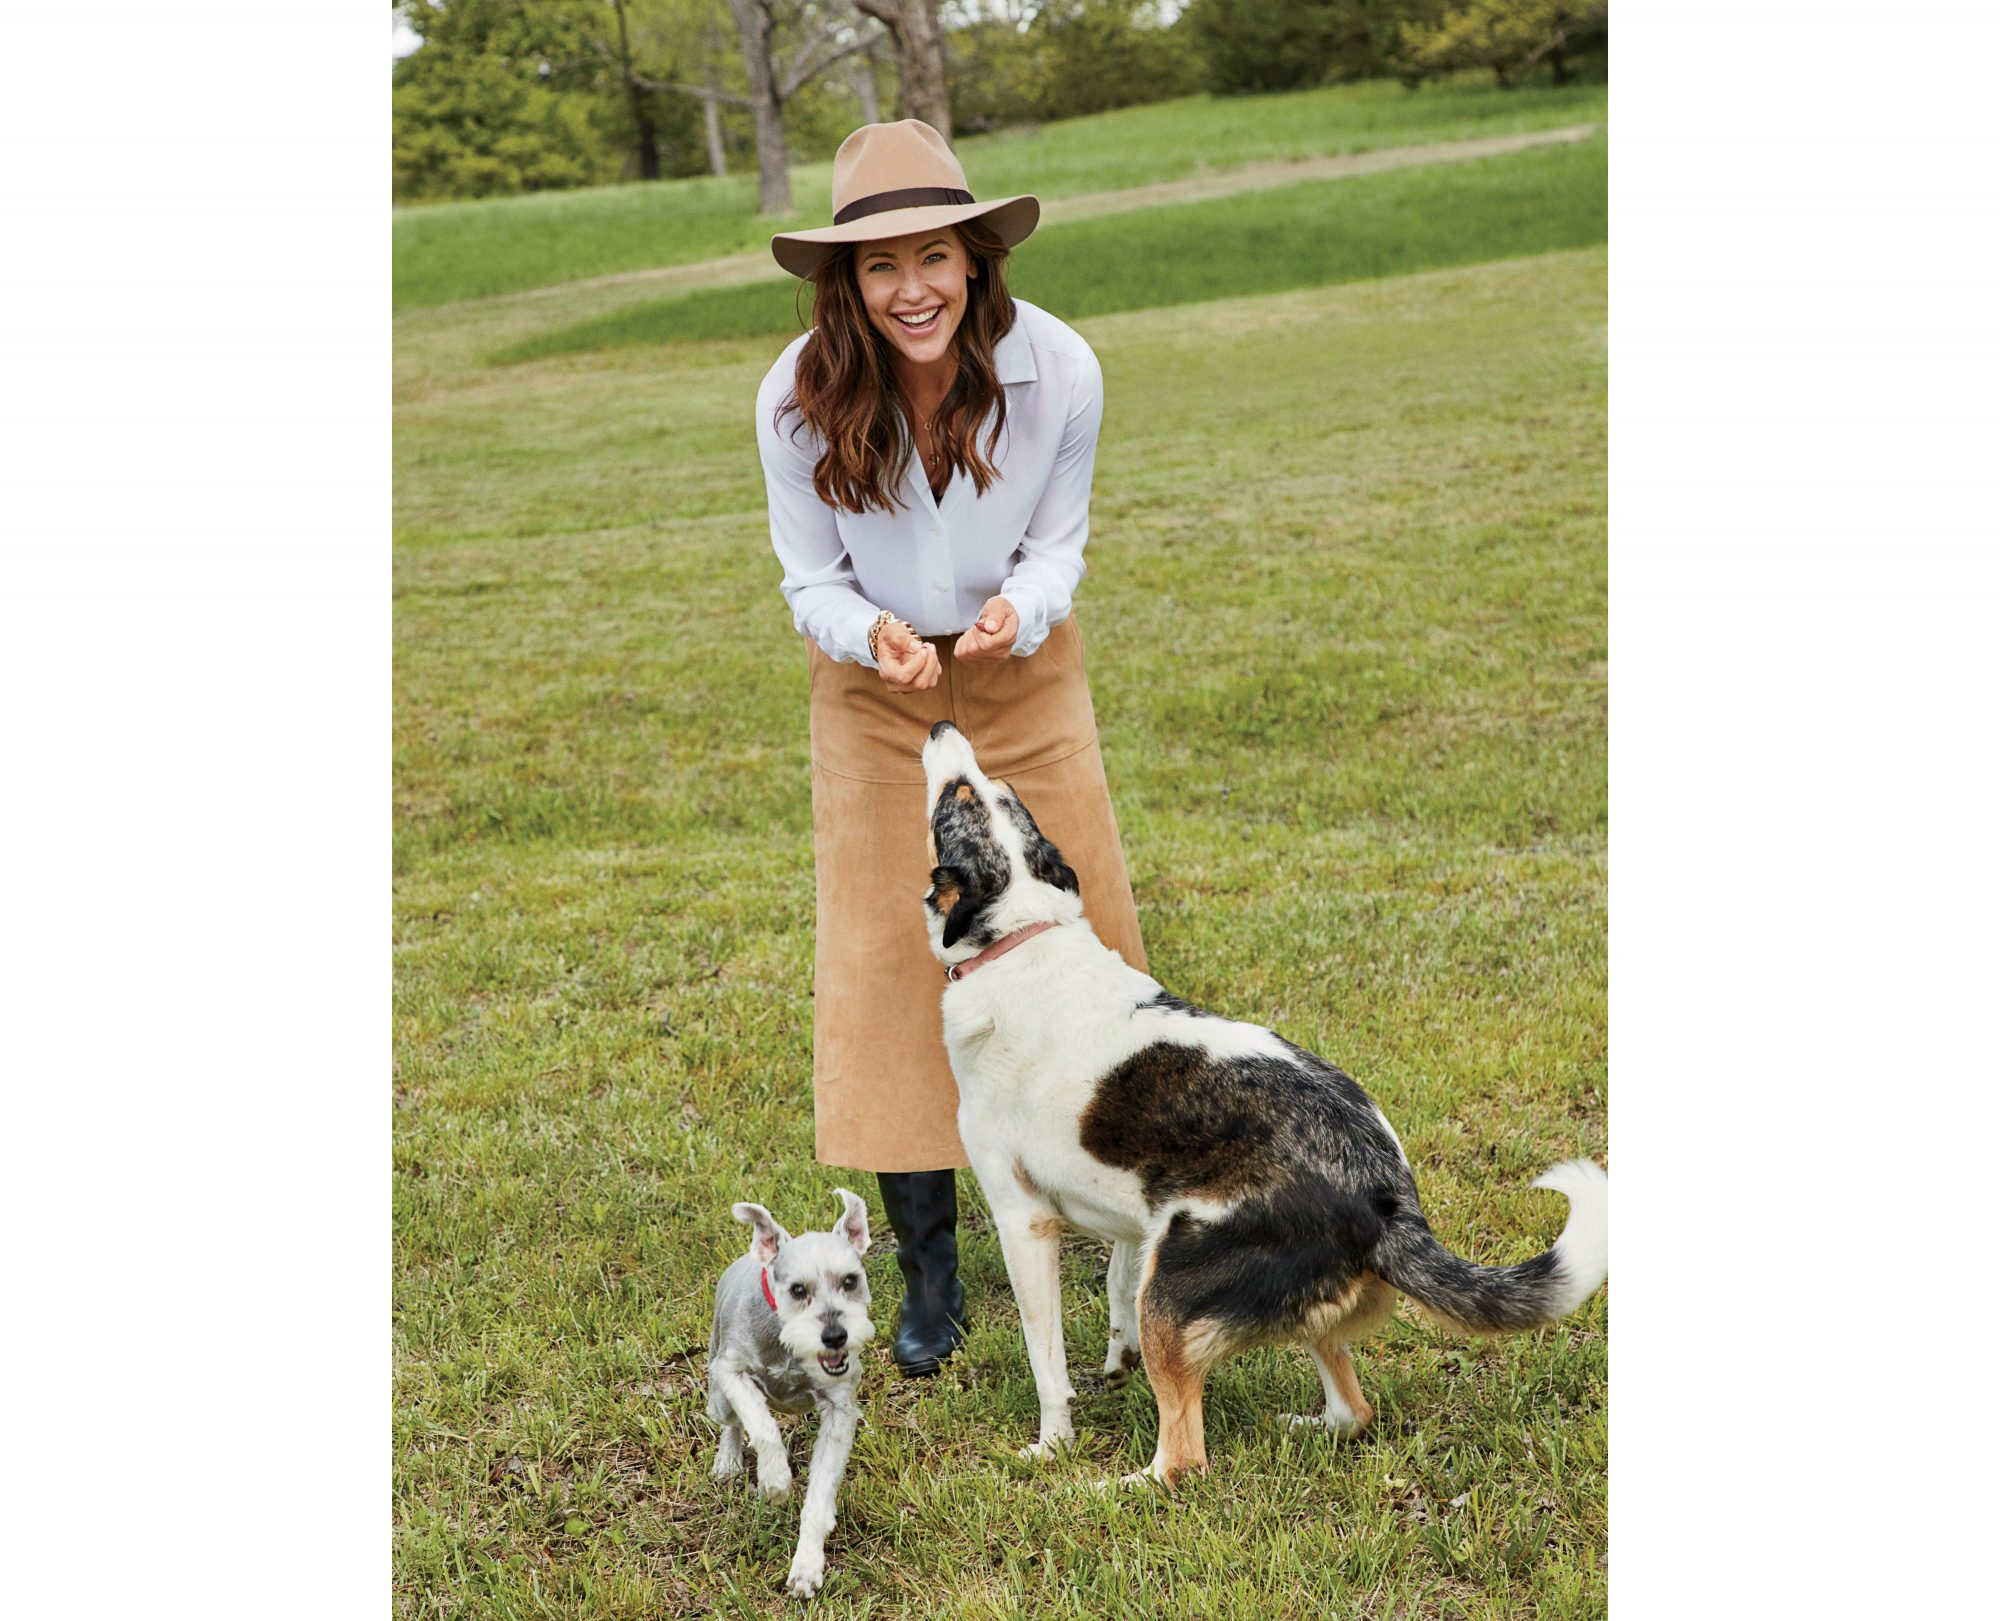 Jennifer Garner Playing with Dogs on Family Farm